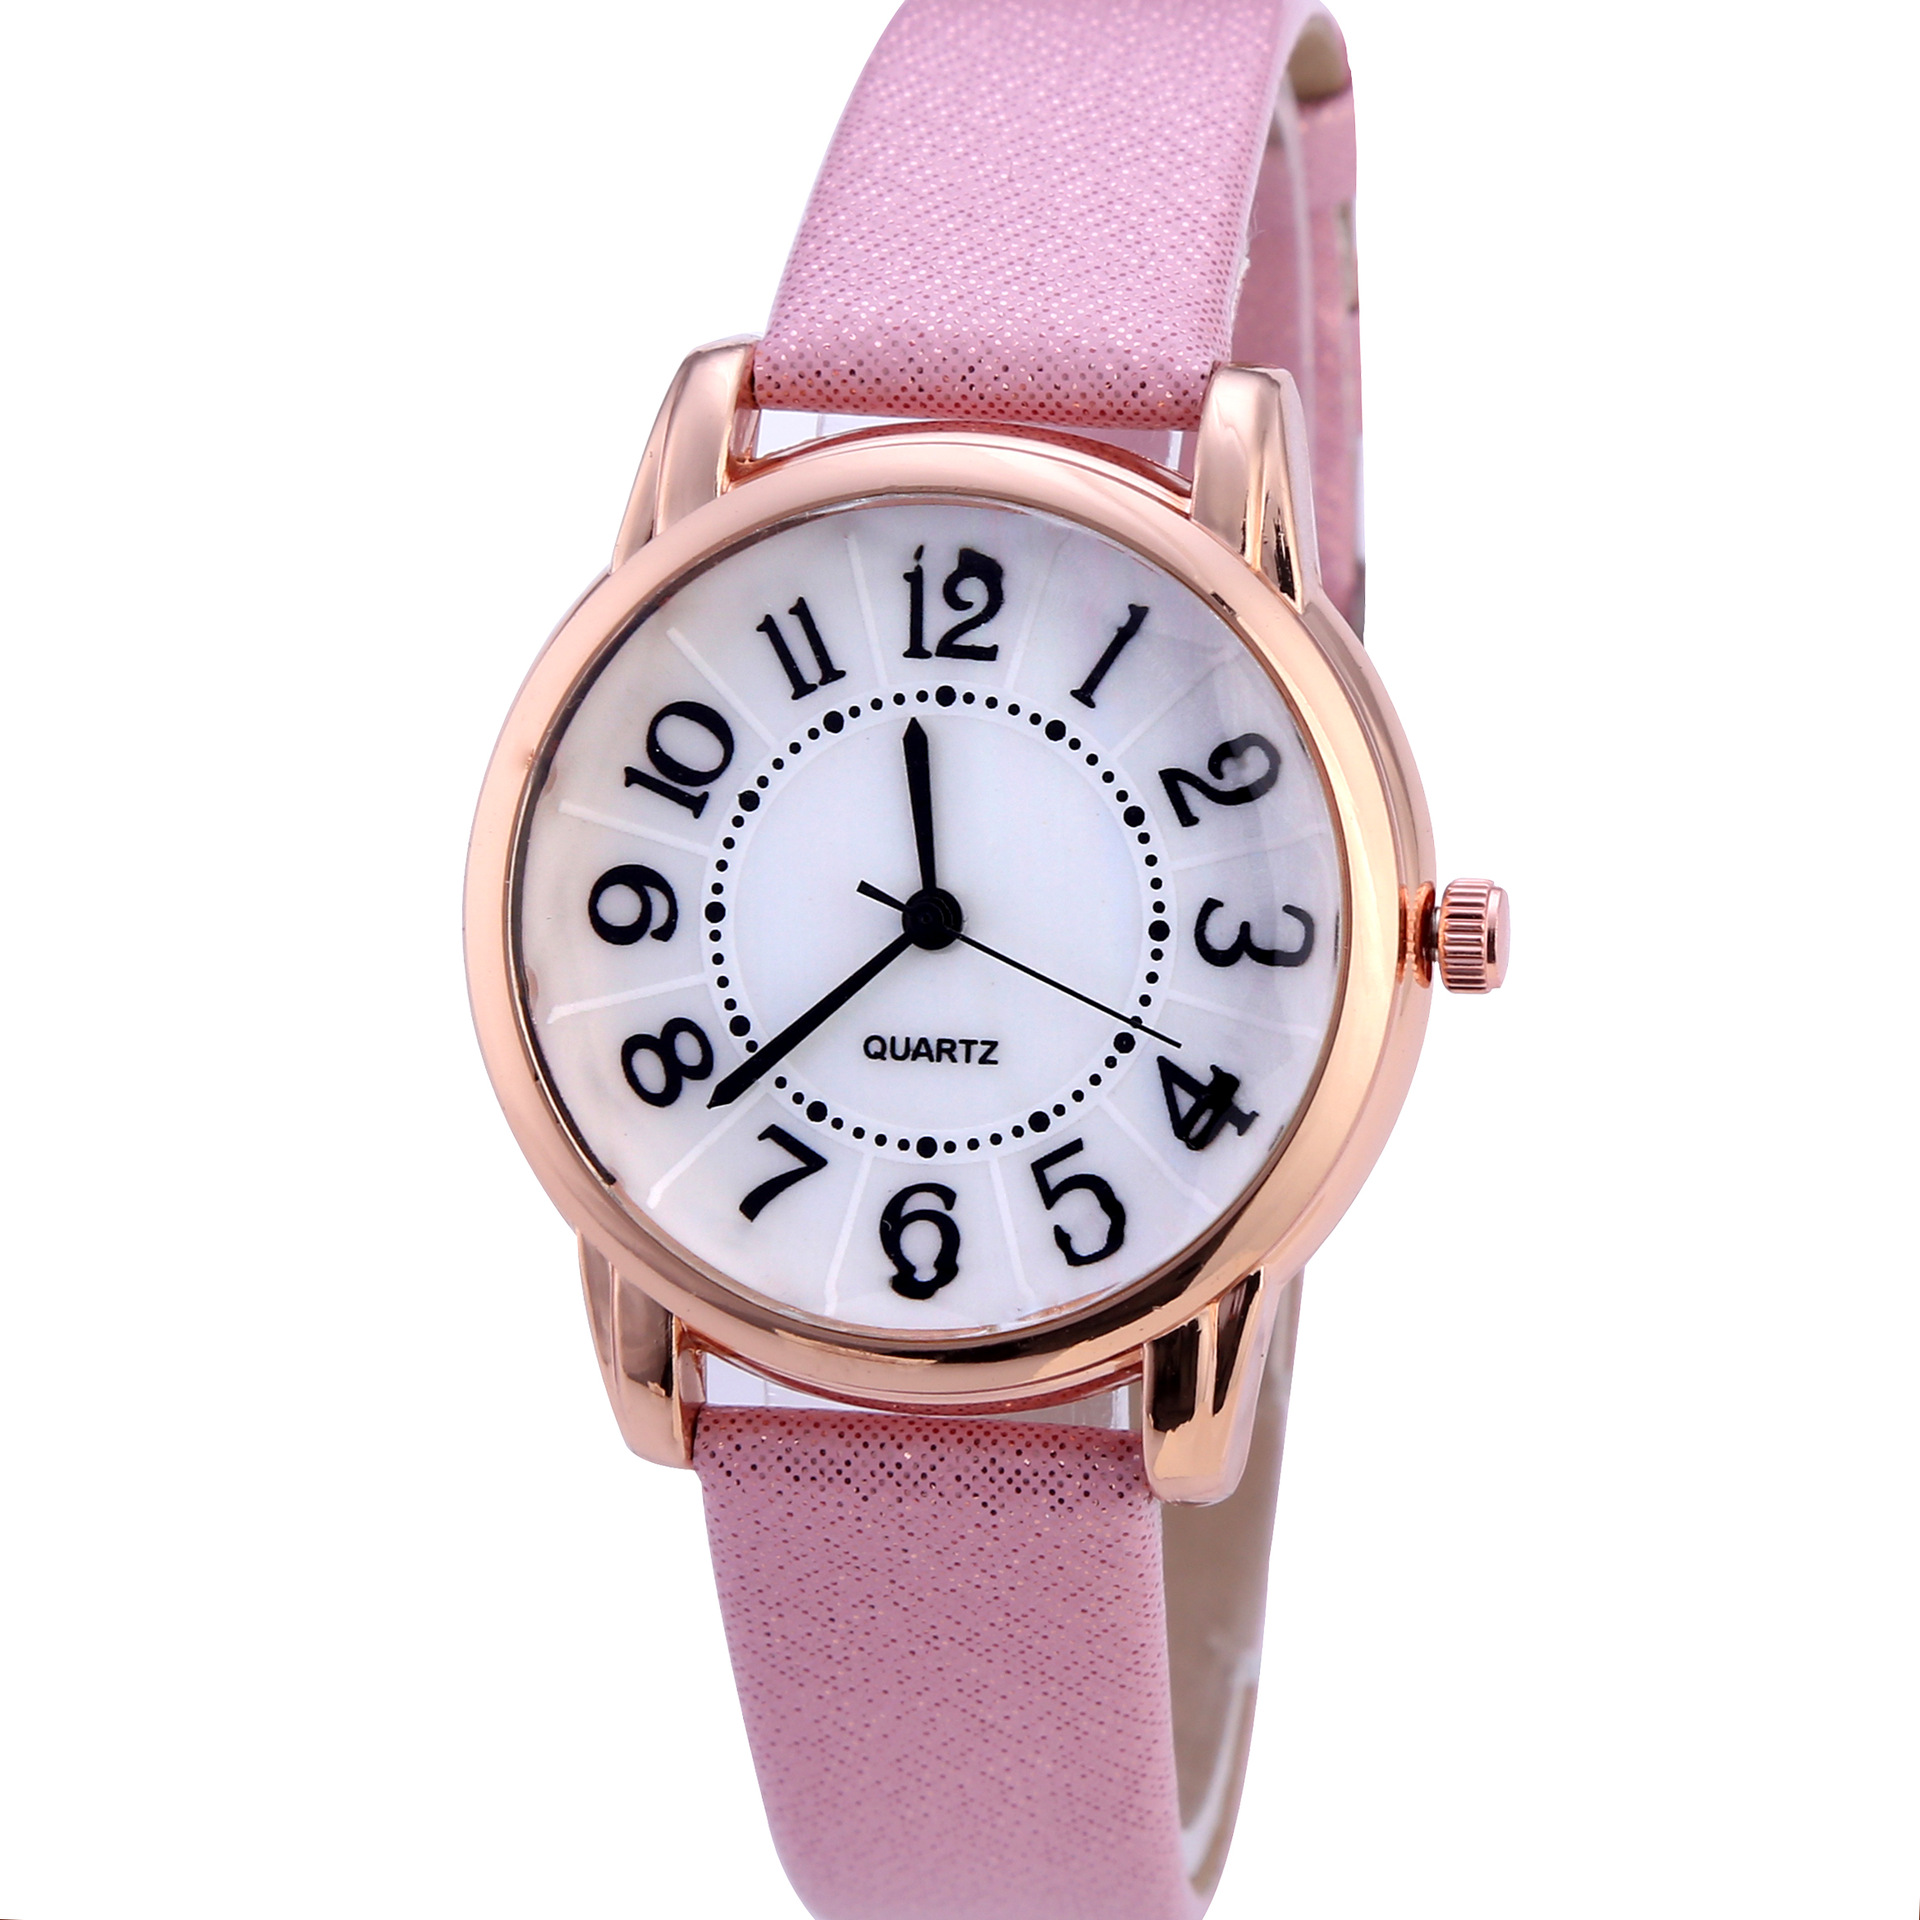 Women Bracelet Watch Simple Dial Wristwatches Casual Fashion Luxury Leather Strap Quartz Ladies Watches Clock Relogio Feminino(China)